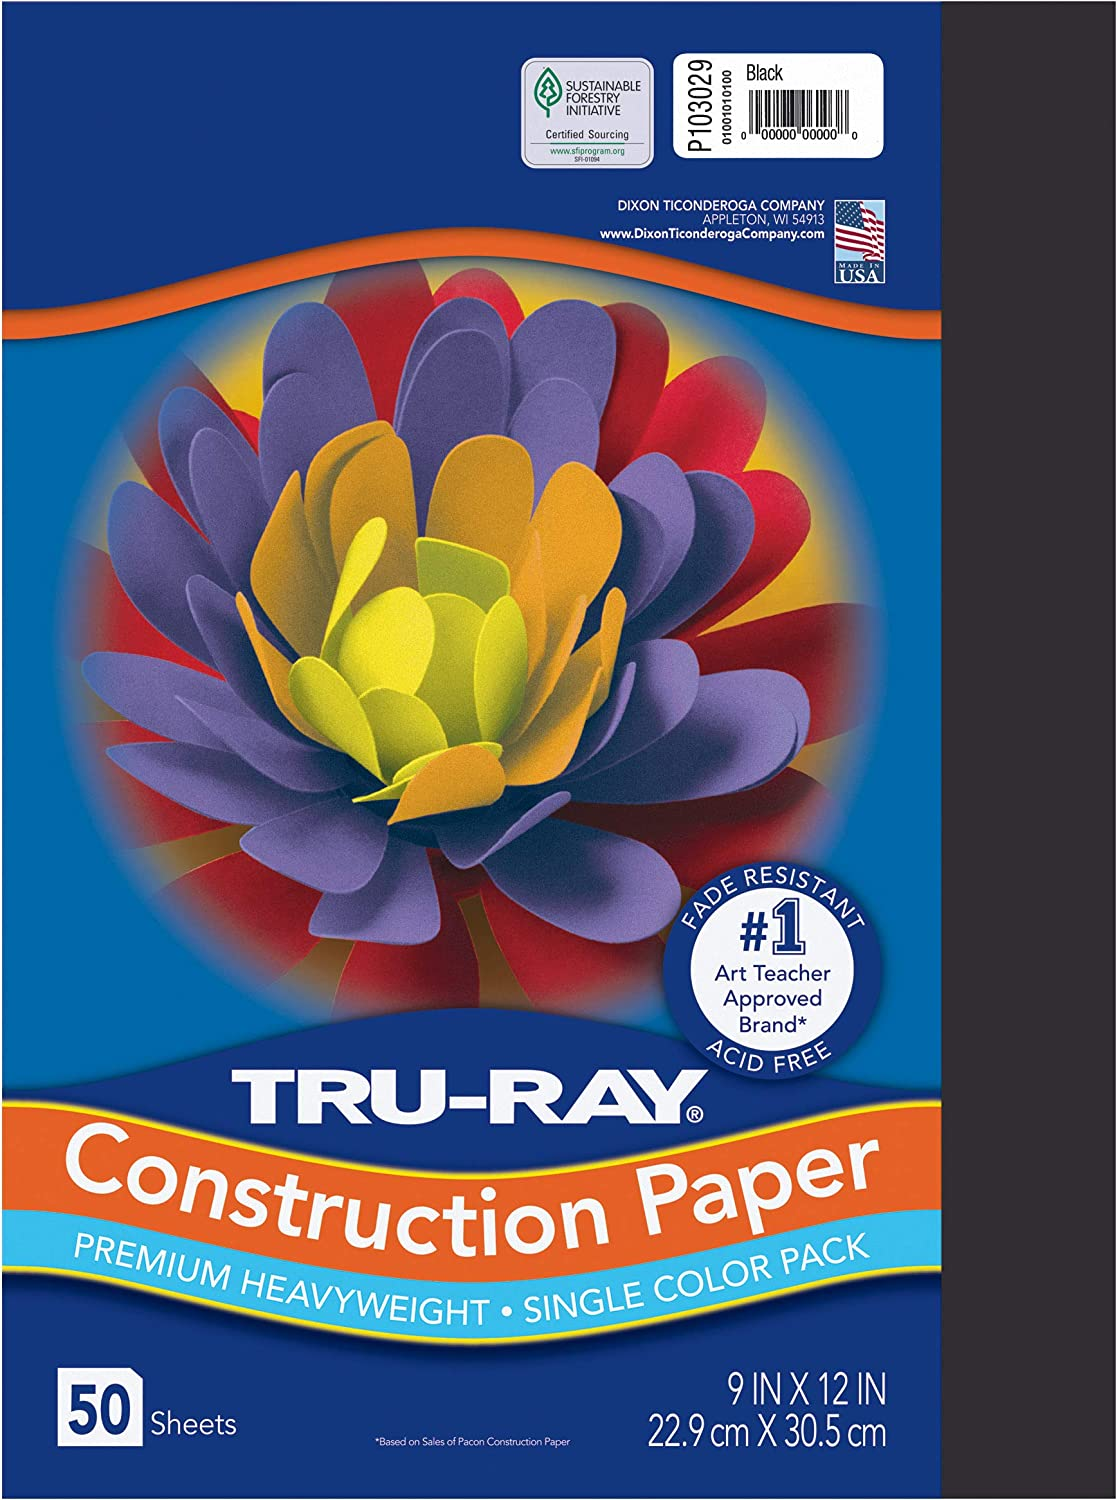 """Tru-Ray Heavyweight Construction Paper, Black, 9"""" x 12"""", 50 Sheets, Sulphite Construction Paper : Office Products"""